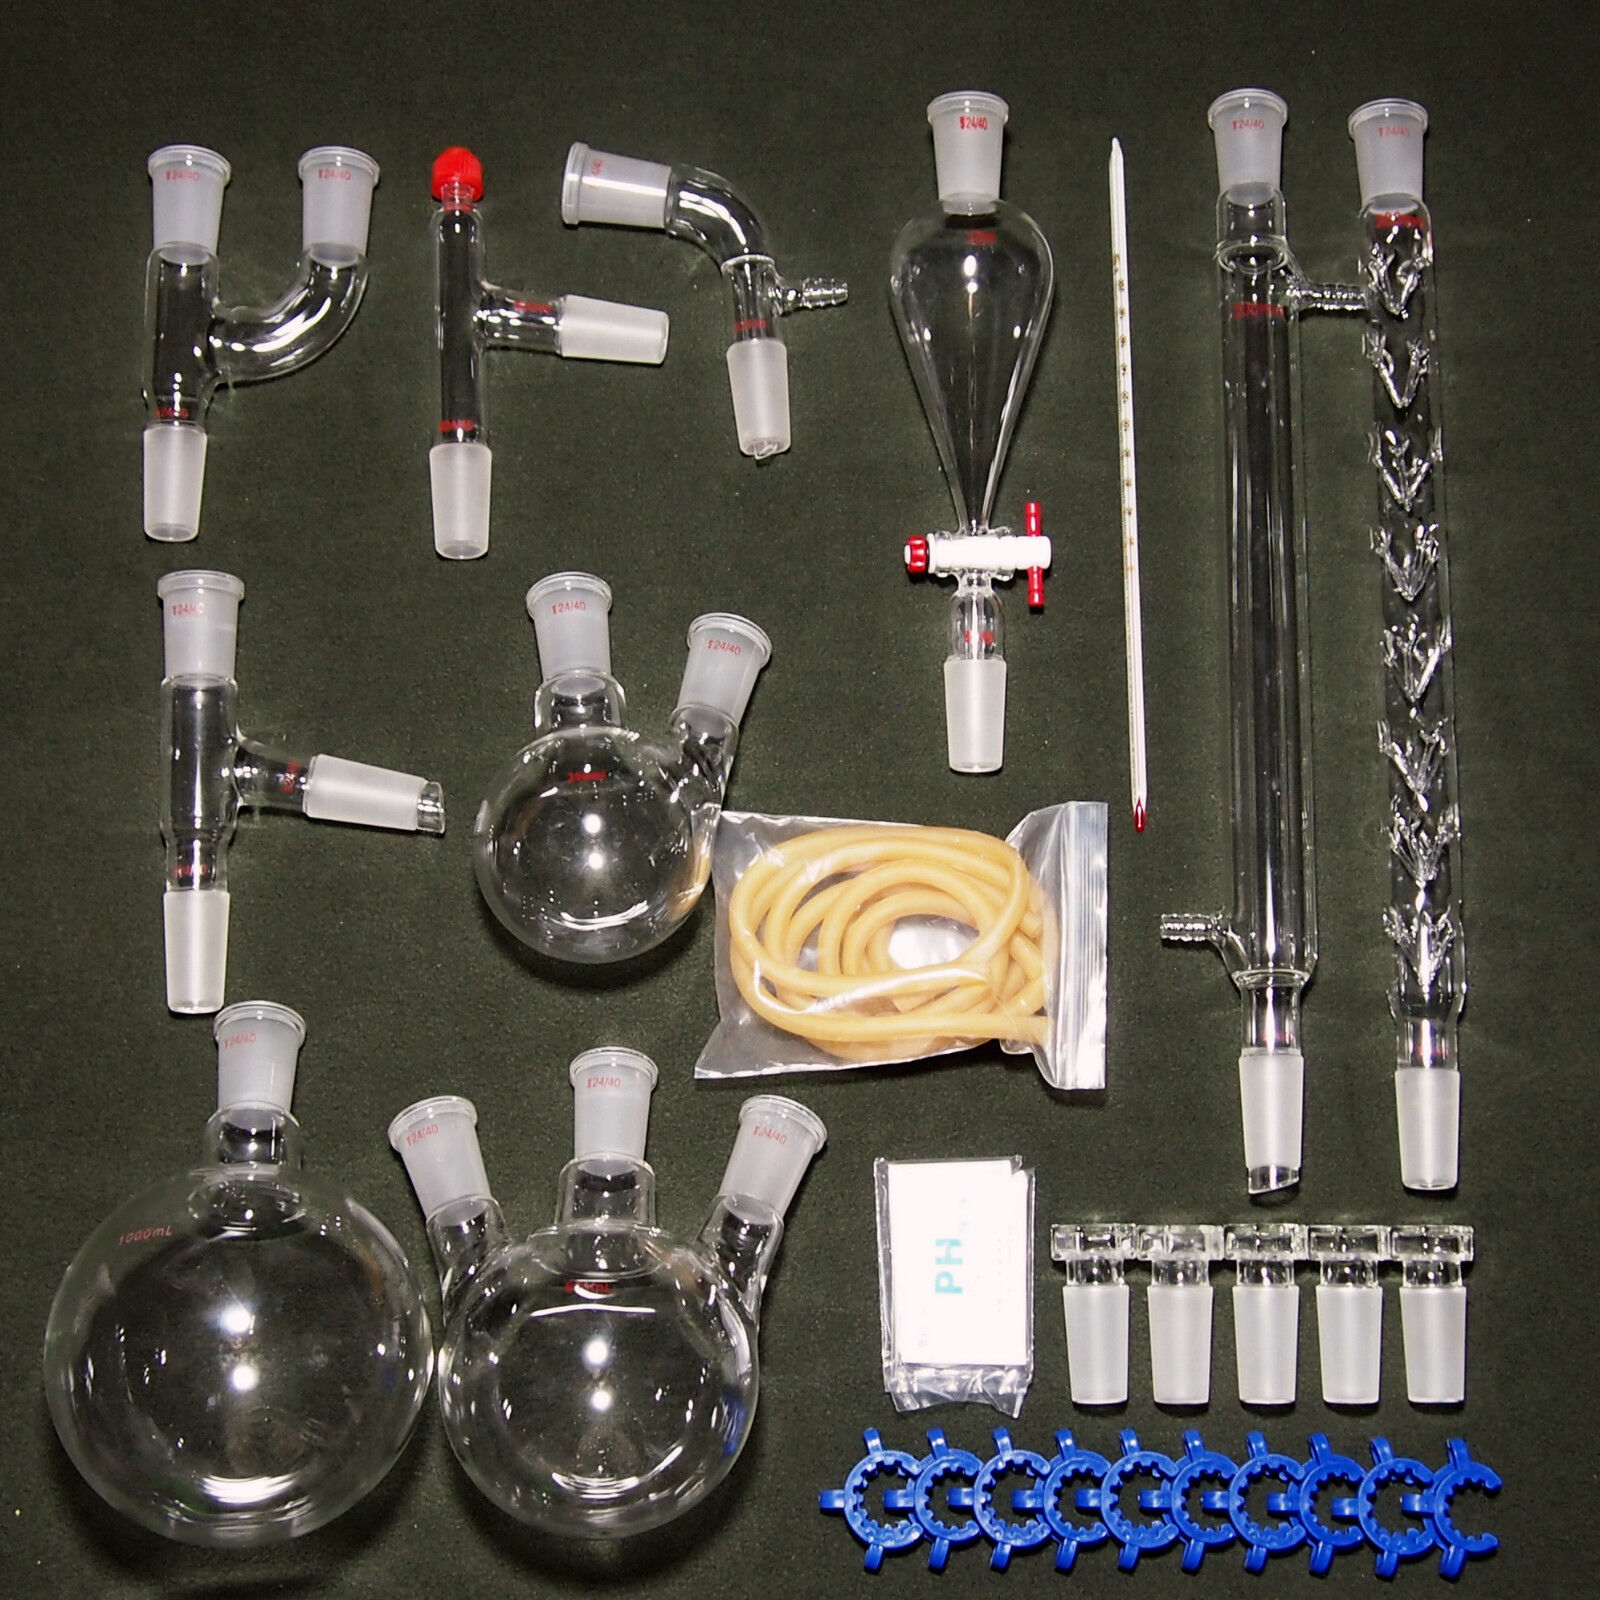 New advanced Chemistry Lab Glassware Kit With 24/40 Glass Ground Joint,29PCS 3